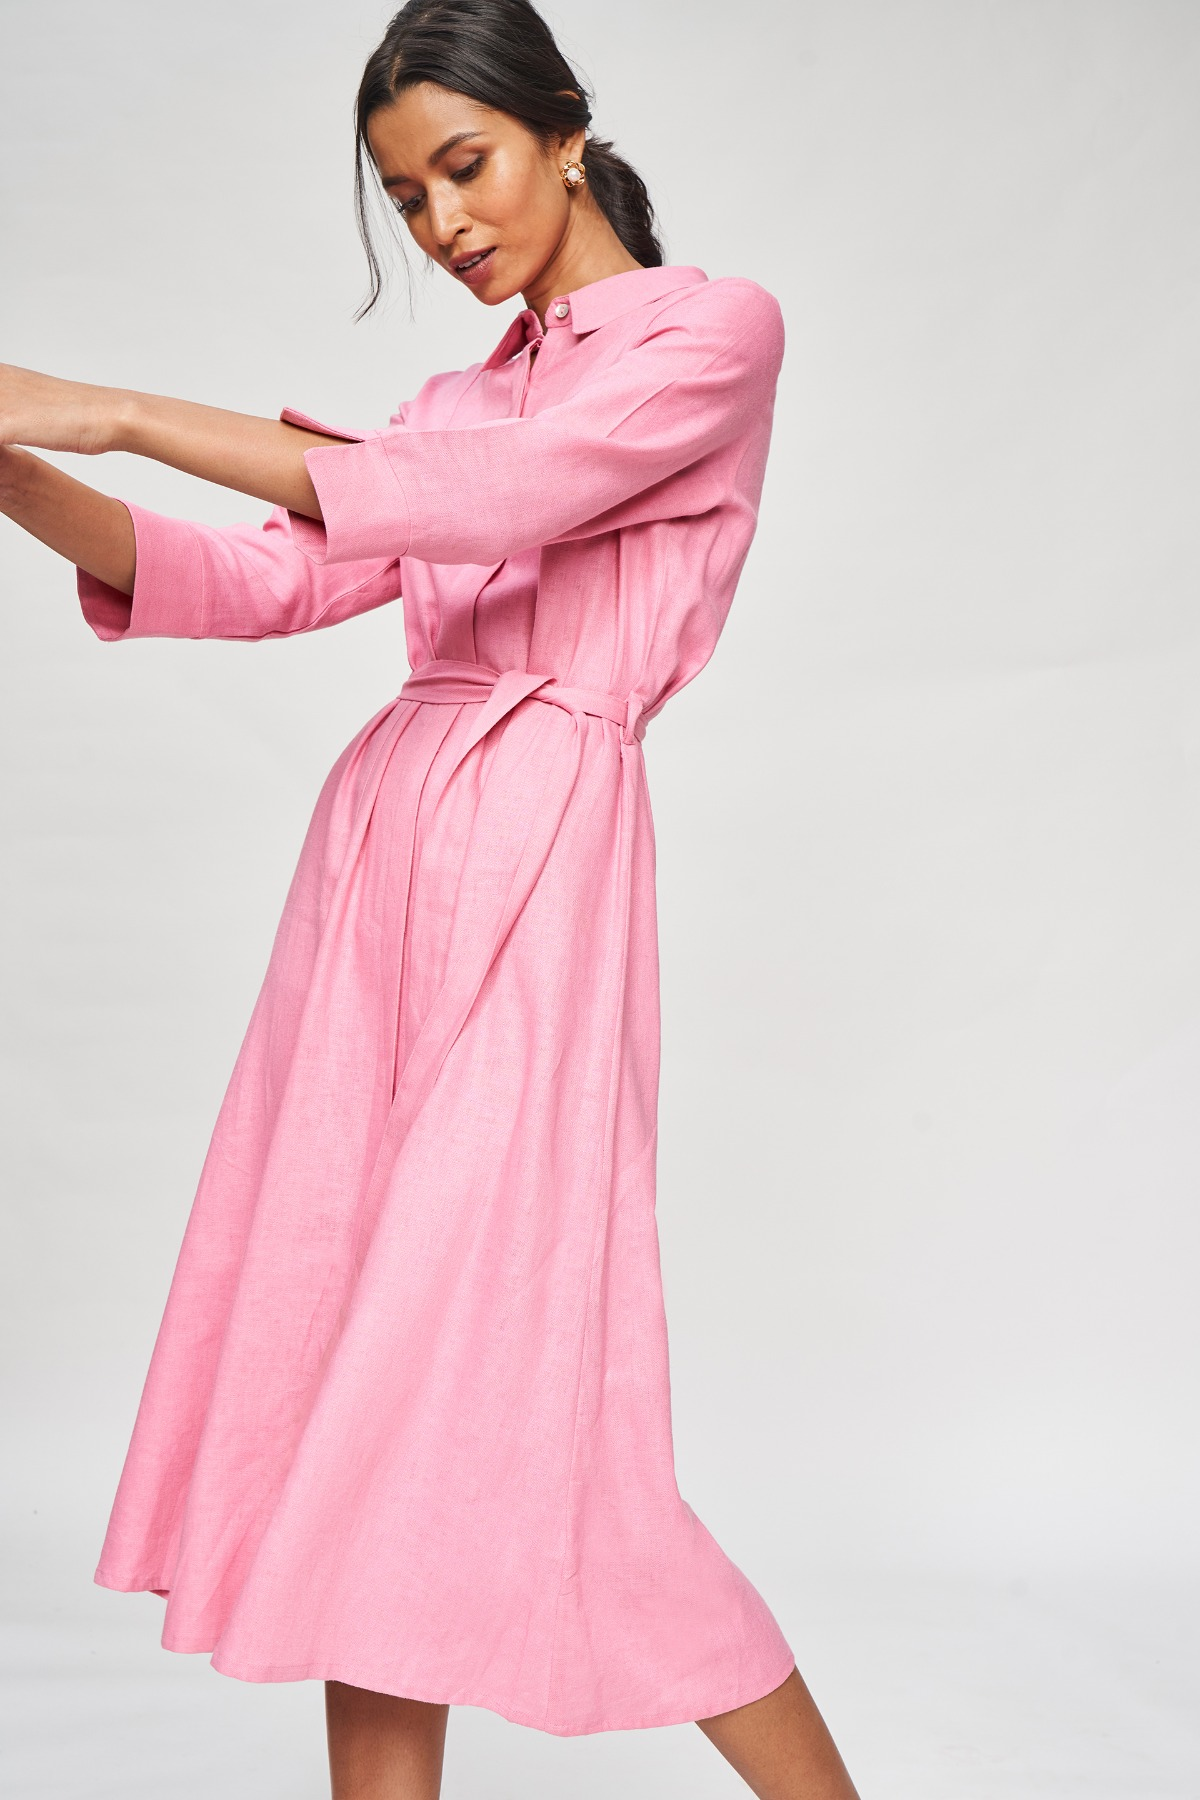 AND | Rose Wood Solid Shirters Dress